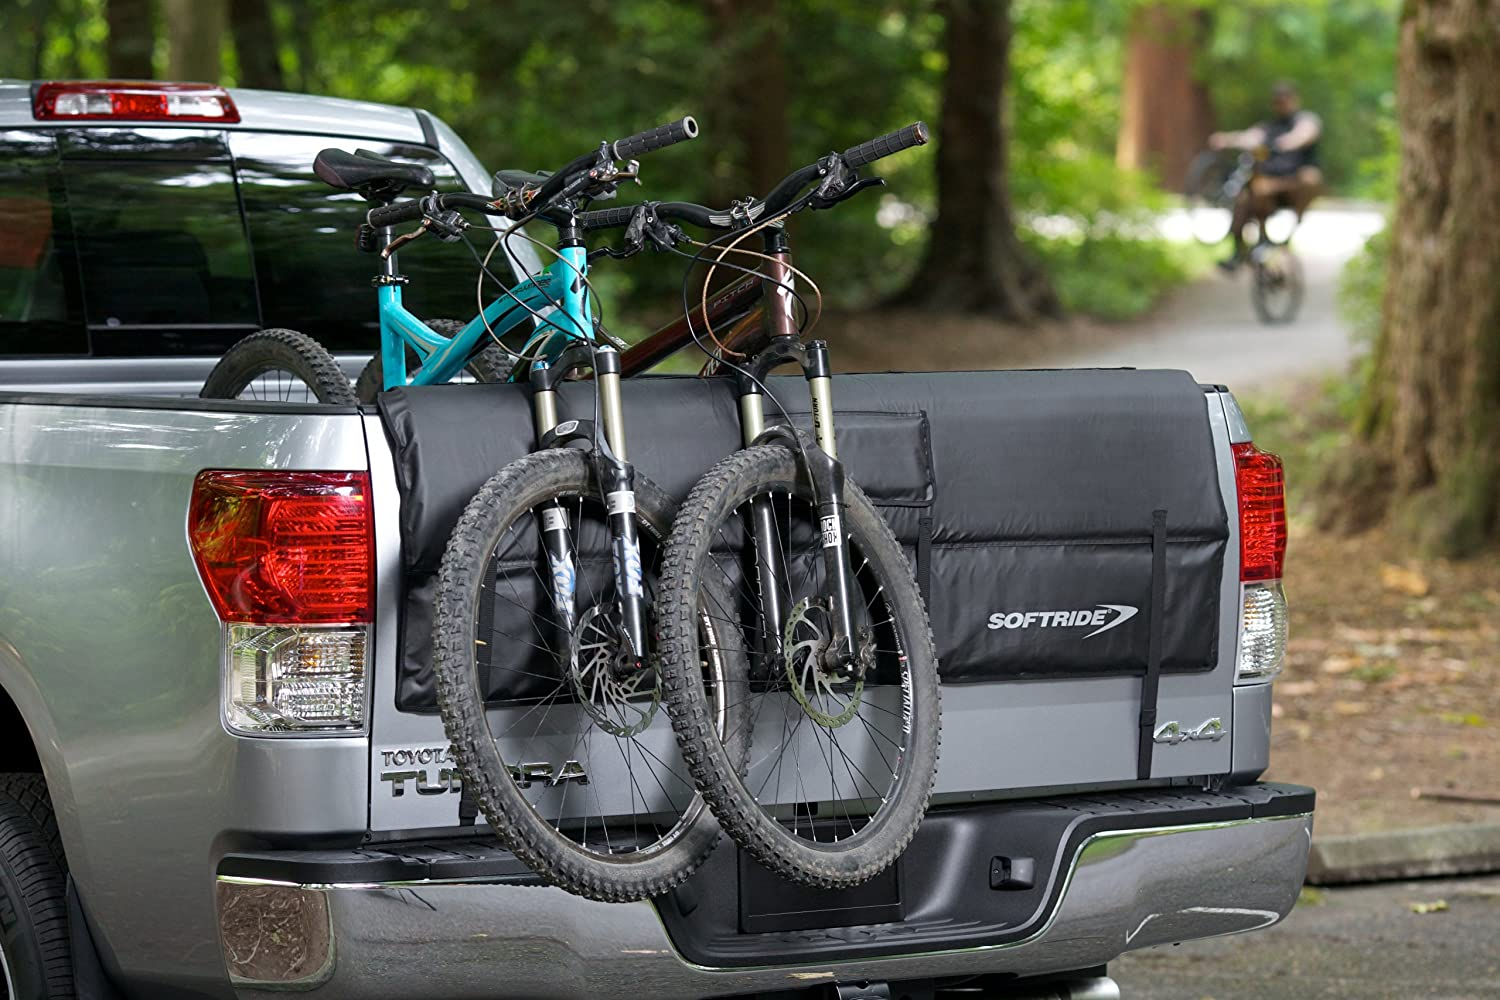 New Small Truck Tailgate Pad Shuttle Pad 5 Bikes For Small /& Middle Pickup Truck